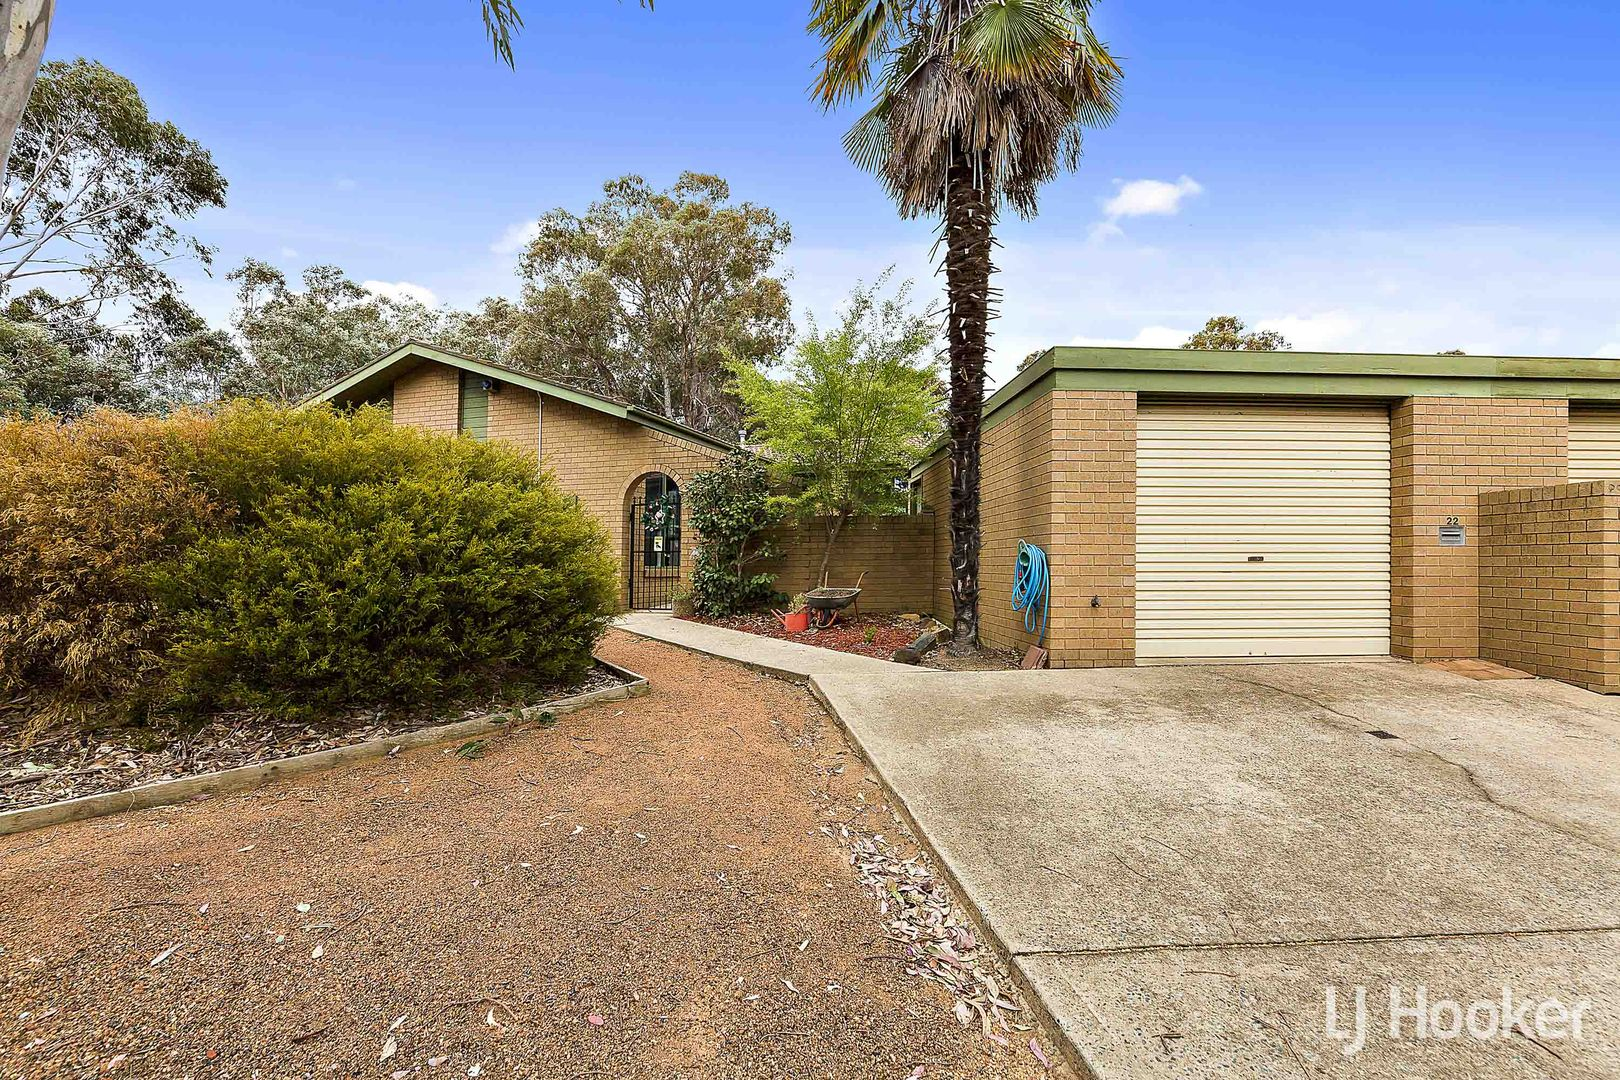 22/93 Chewings Street, Scullin ACT 2614, Image 0